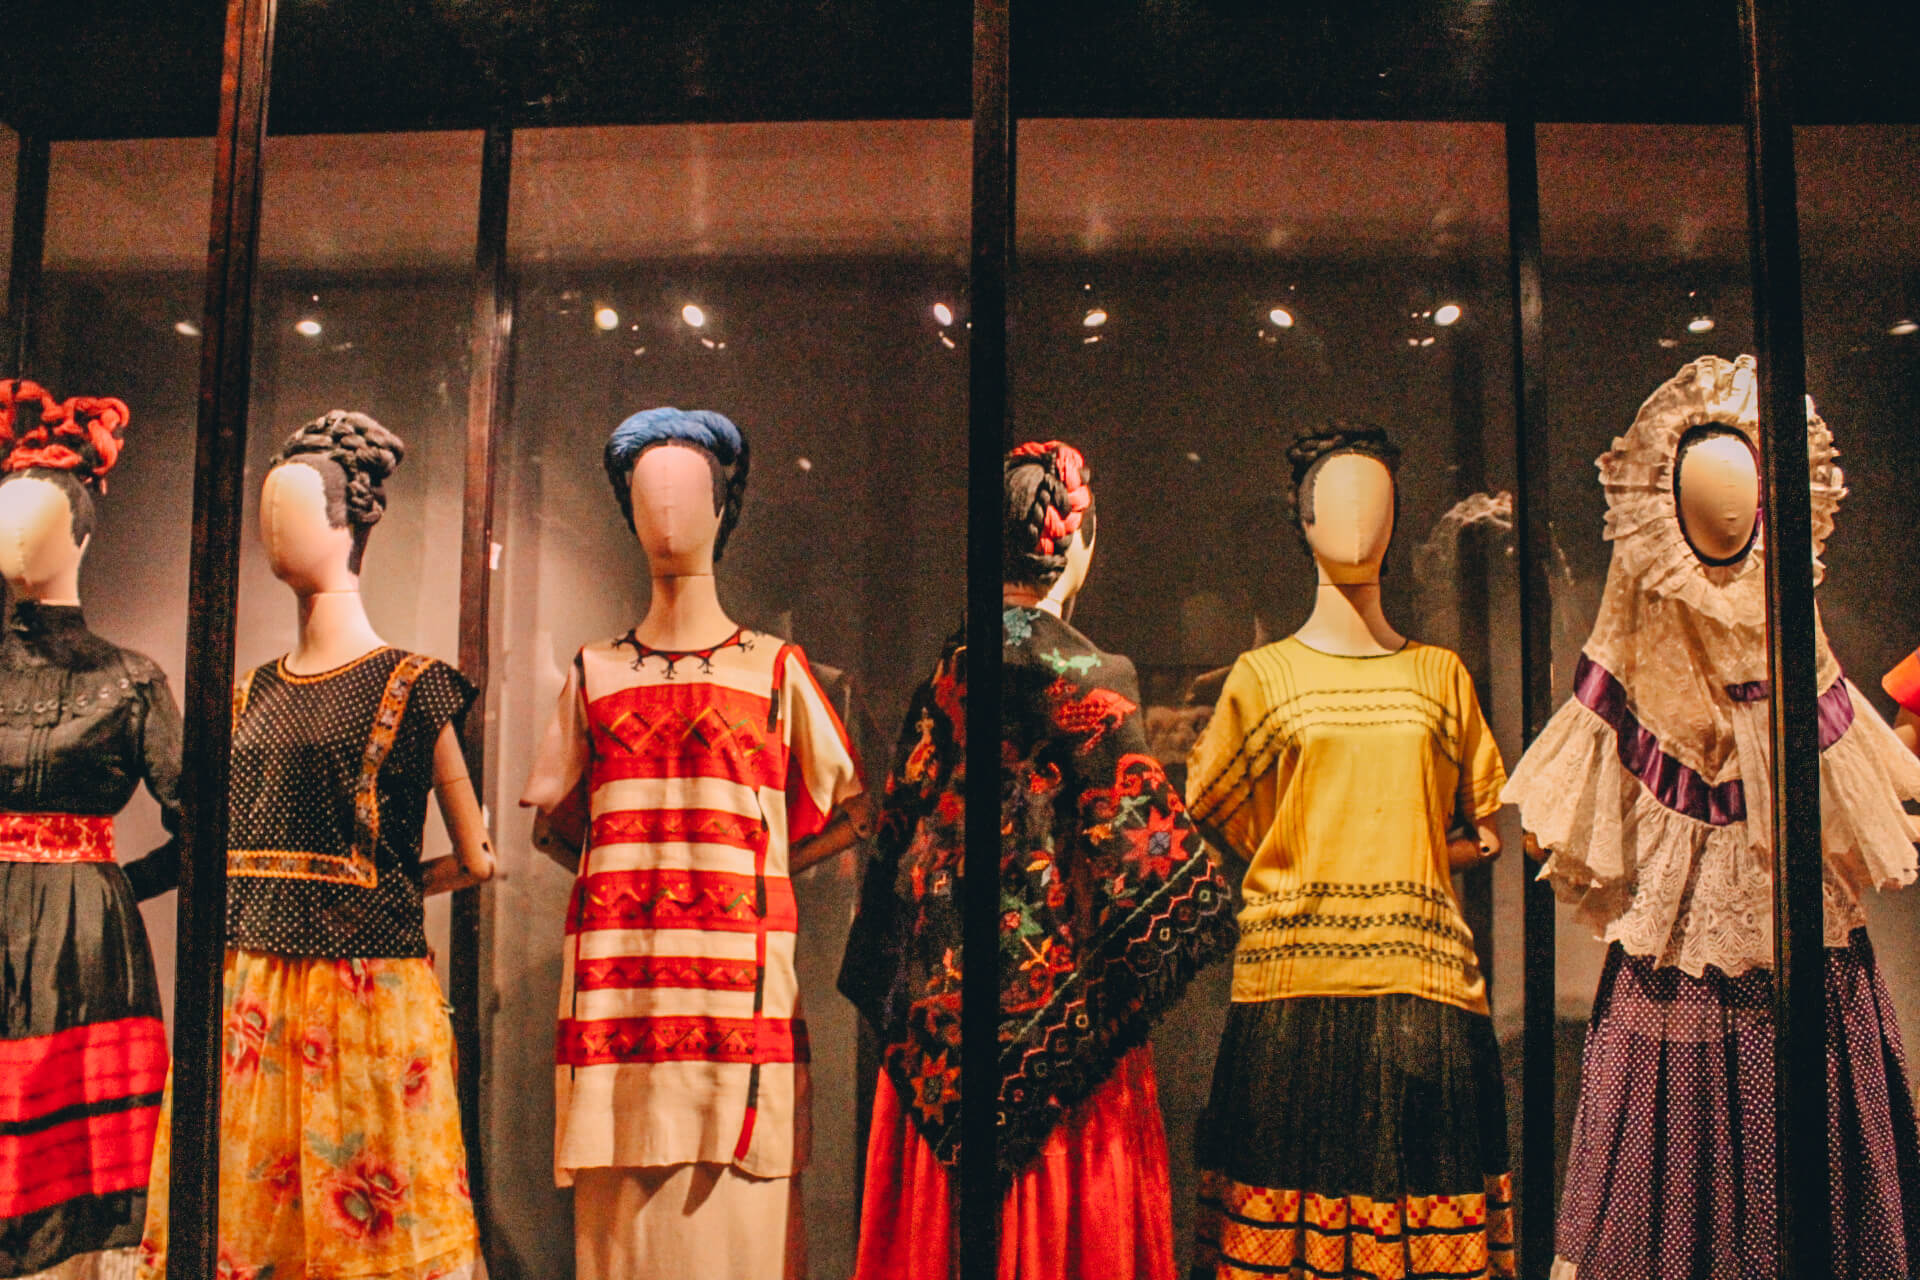 The Wardrobe of Frida Kahlo